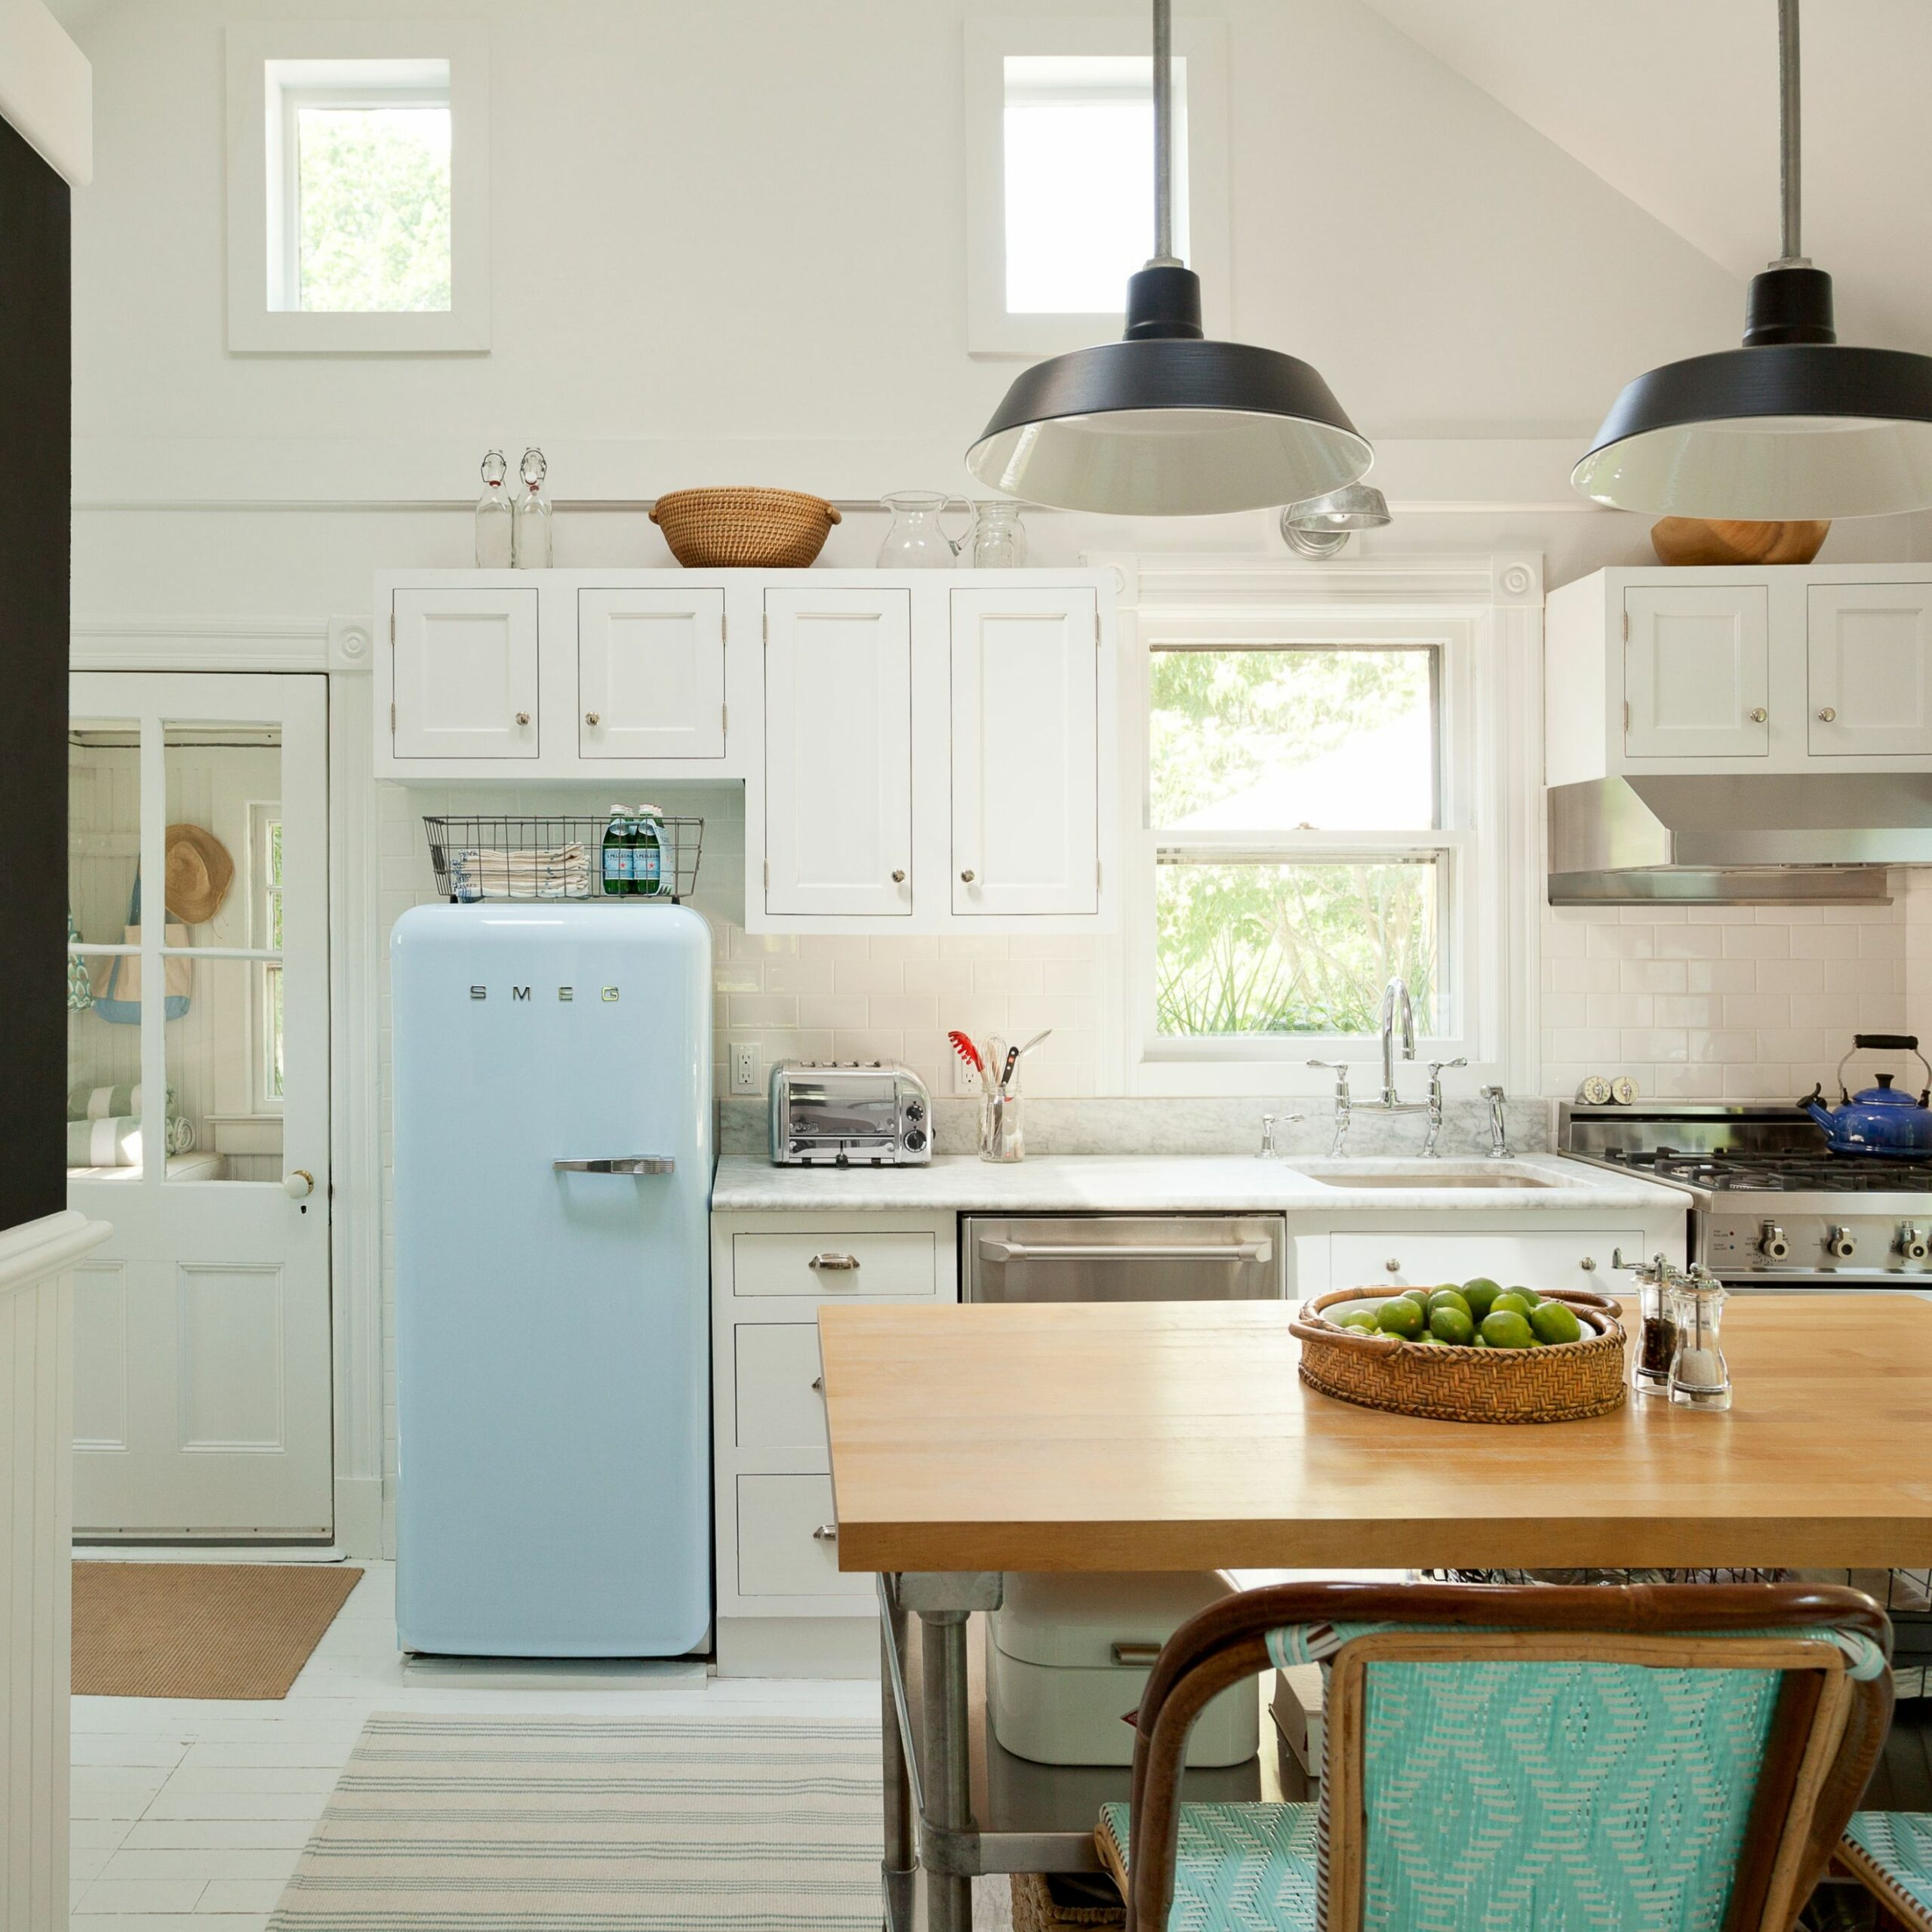 The Best Small Kitchen Design Ideas for Your Tiny Space ...